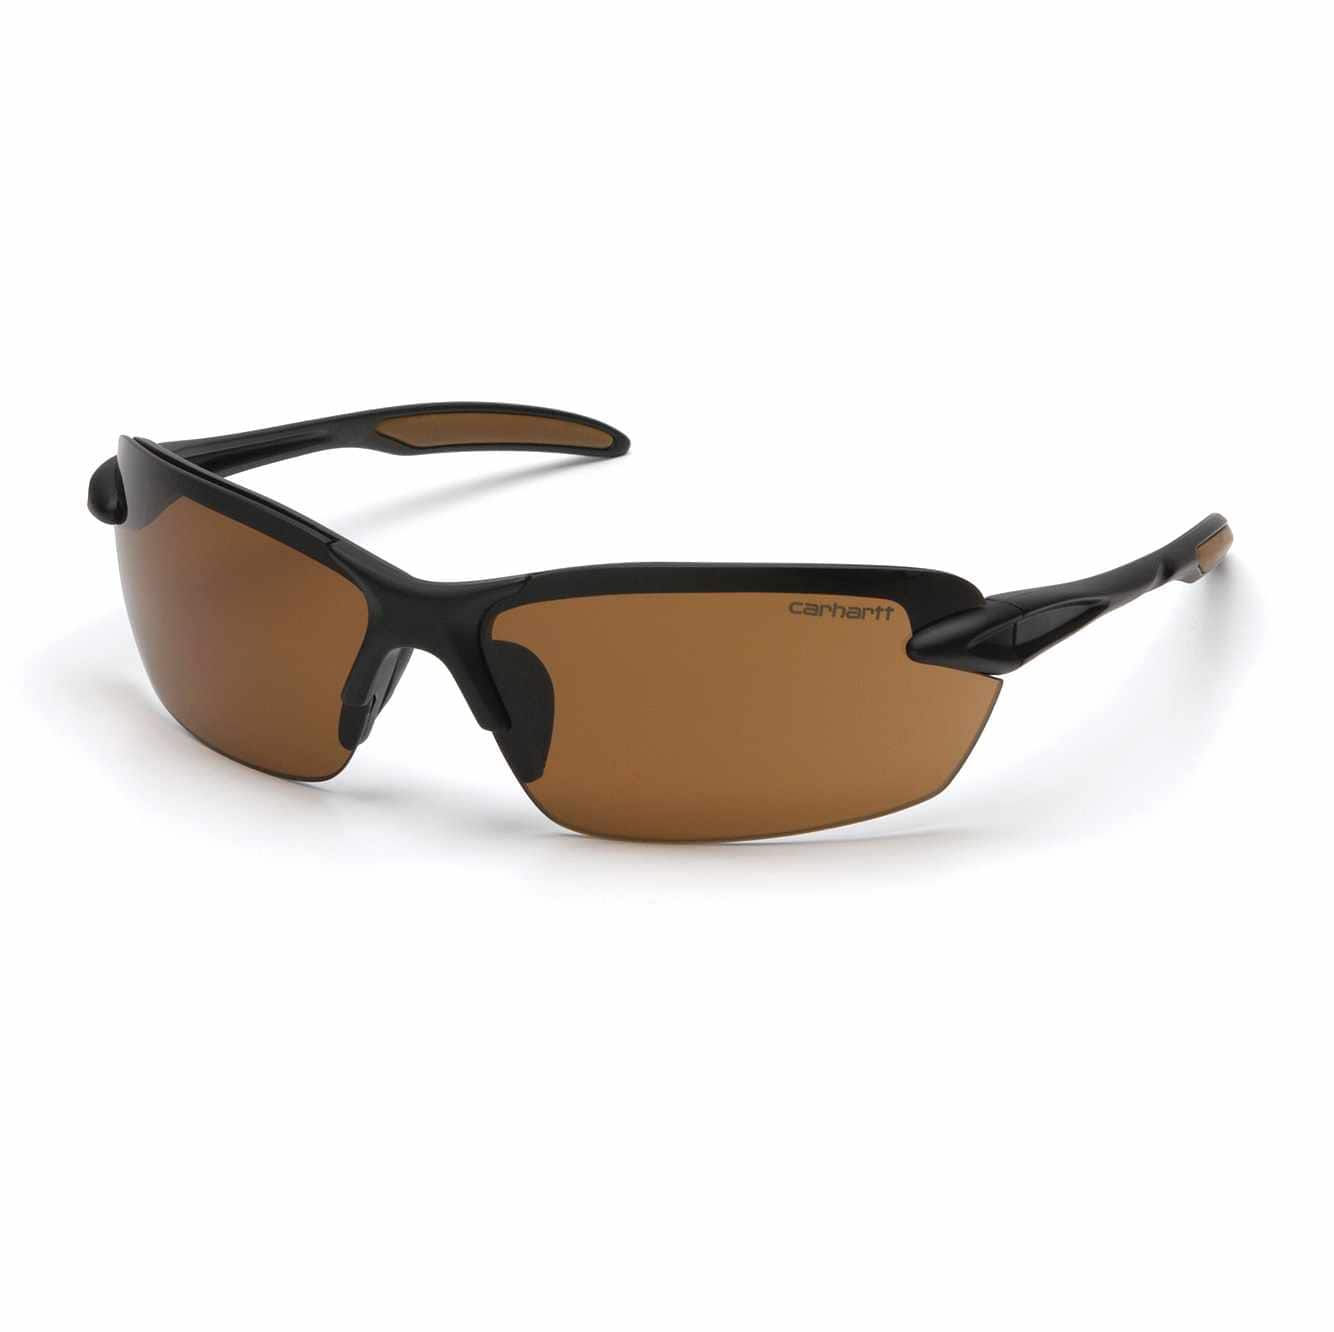 Picture of Spokane Safety Glasses in Bronze